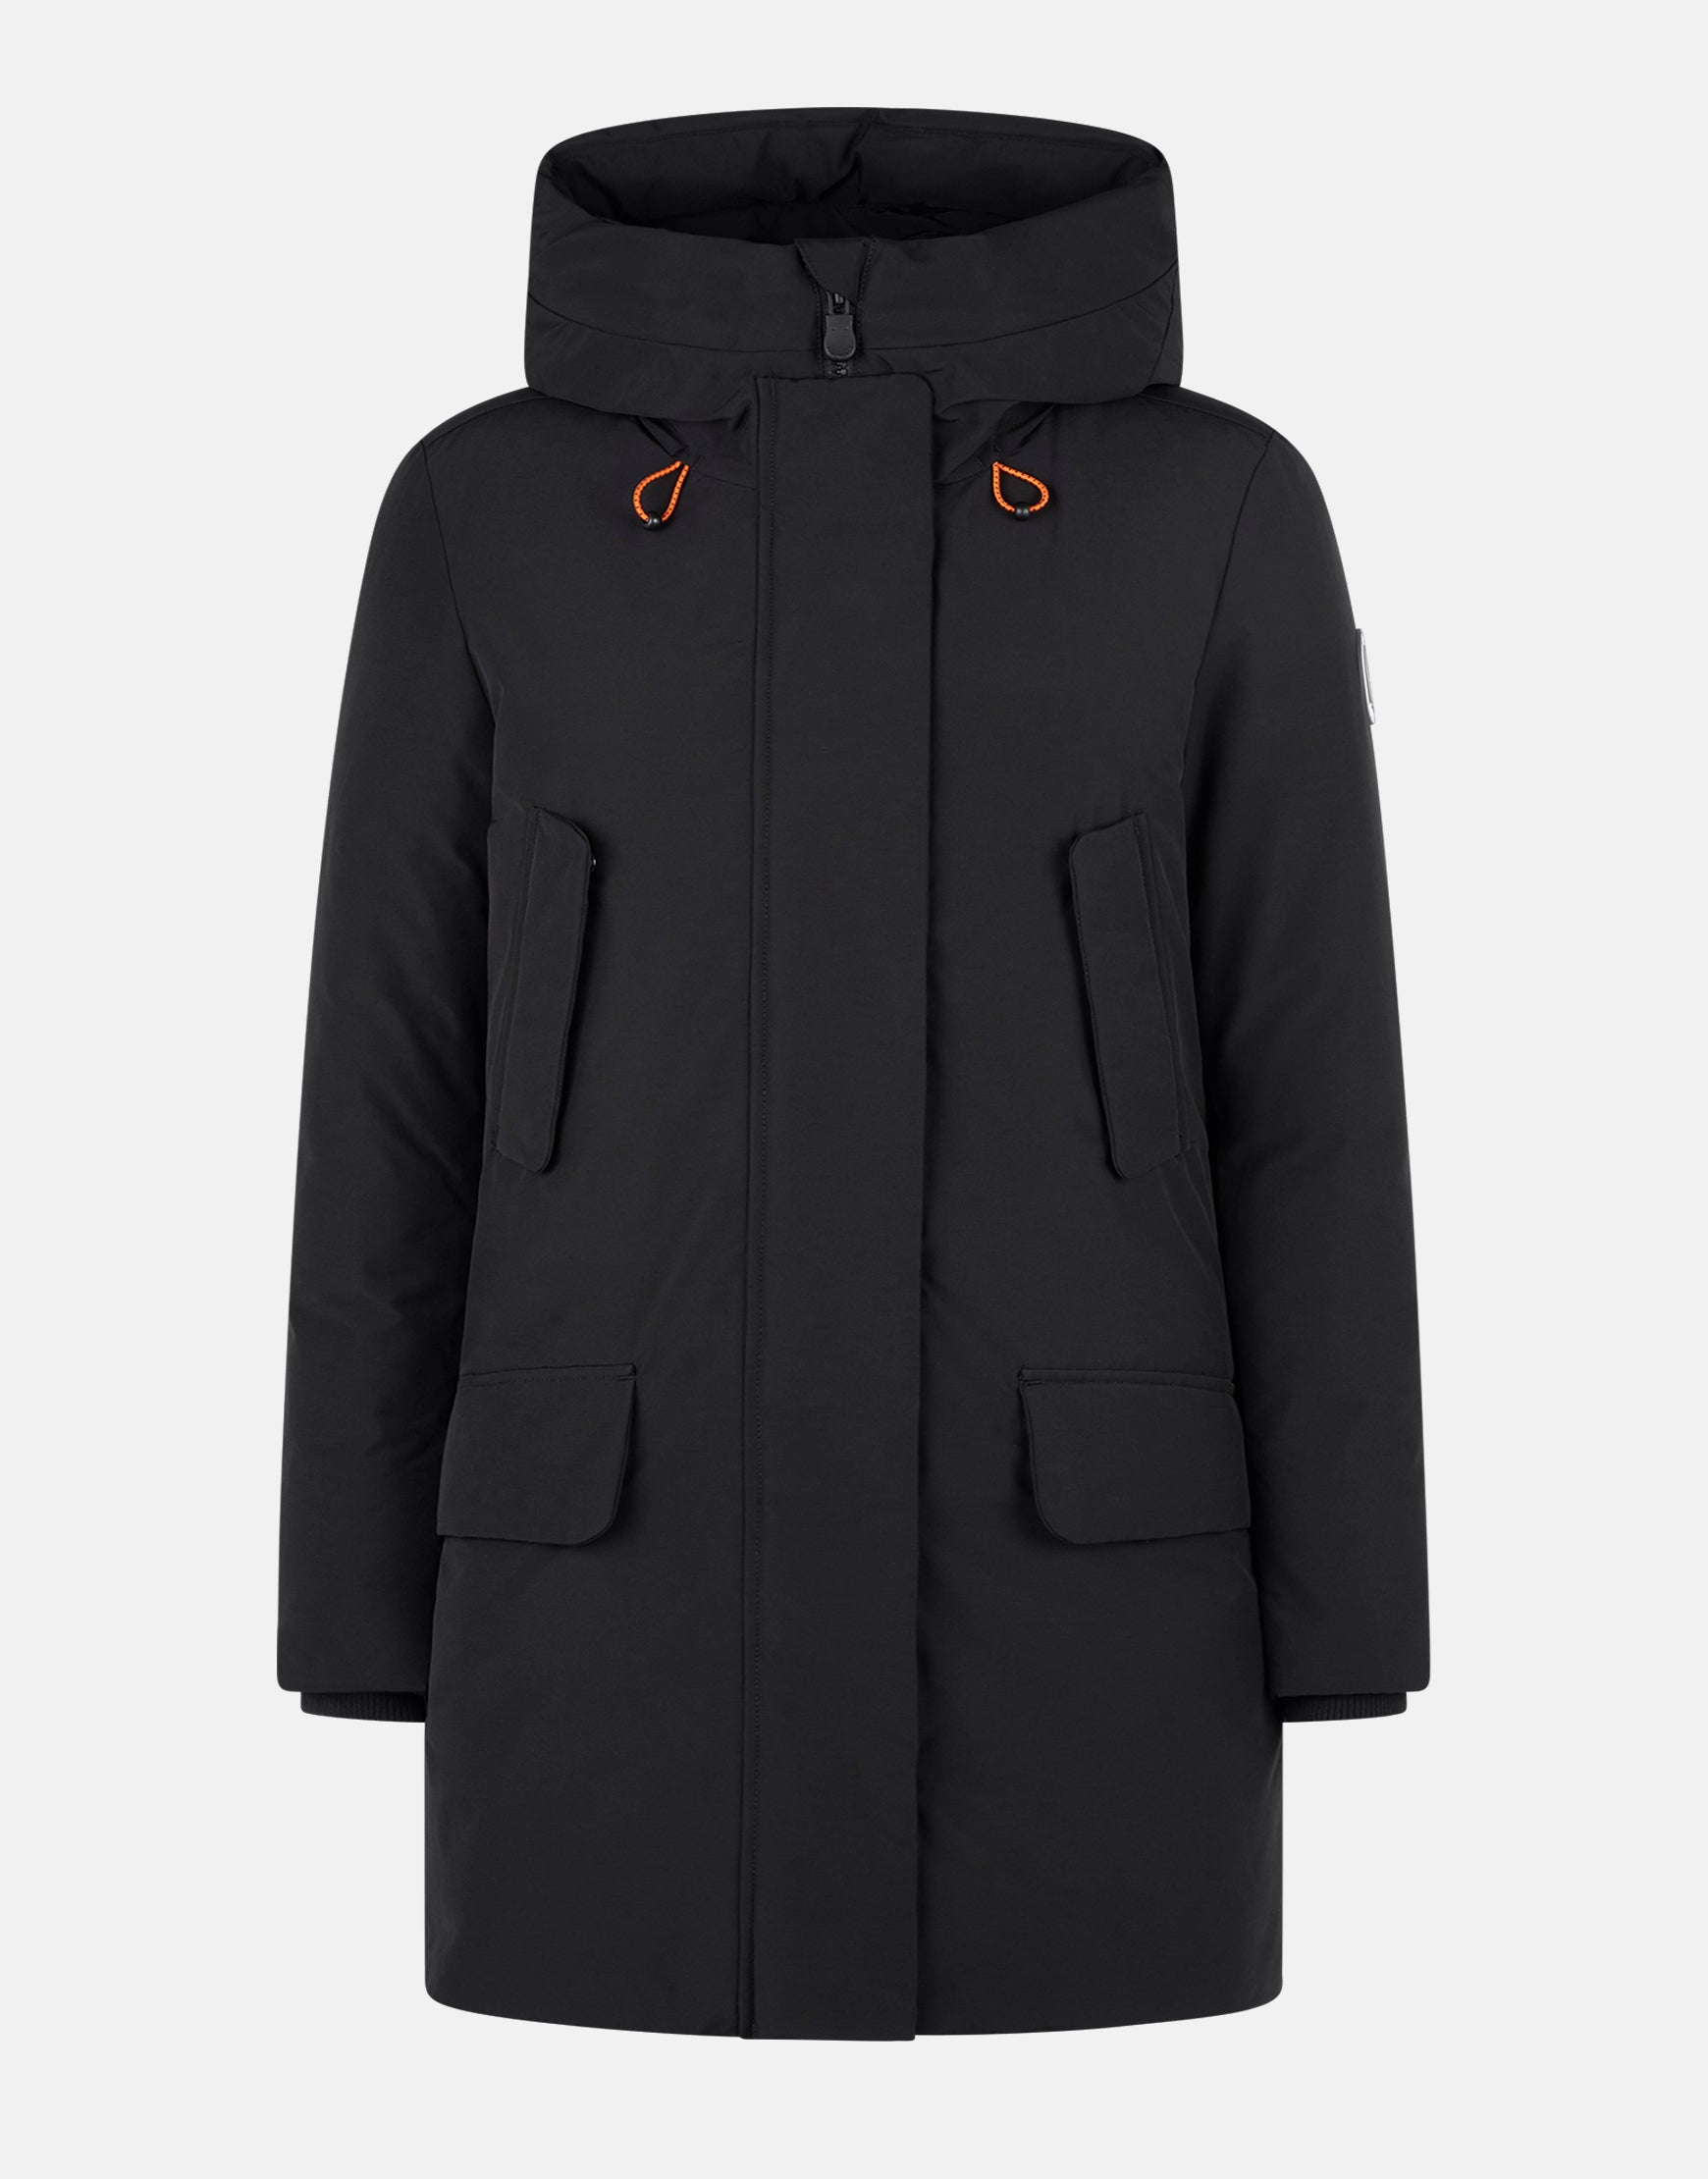 COPY Save Classic The Parka Women's Winter Duck Hooded CordeBx